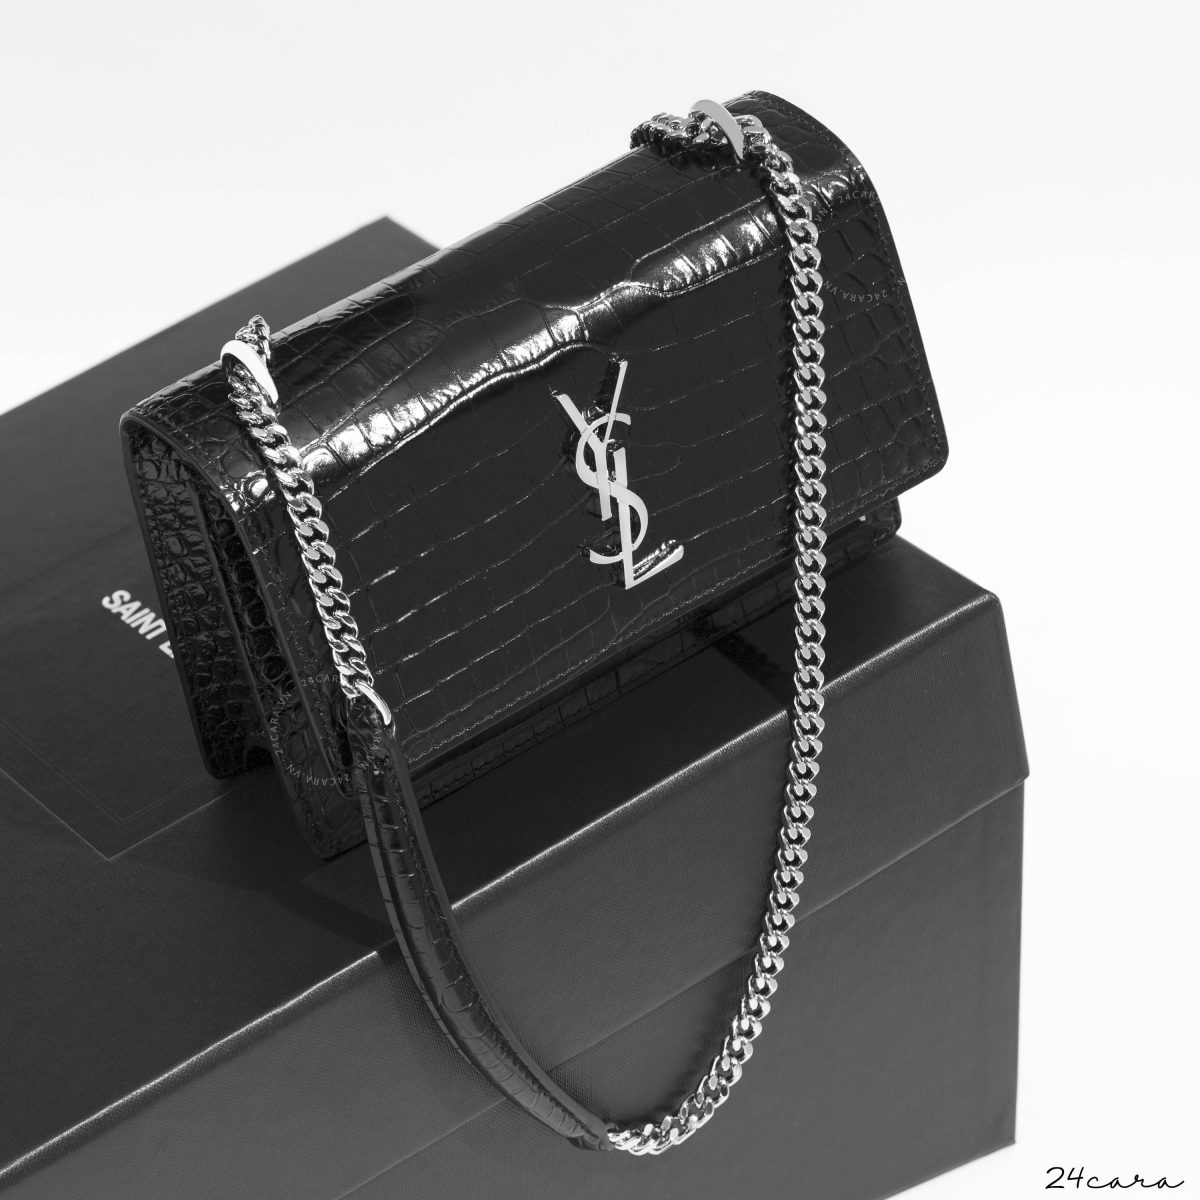 SAINT LAURENT CHAIN WALLET IN CROCODILE EMBOSSED SHINY LEATHER